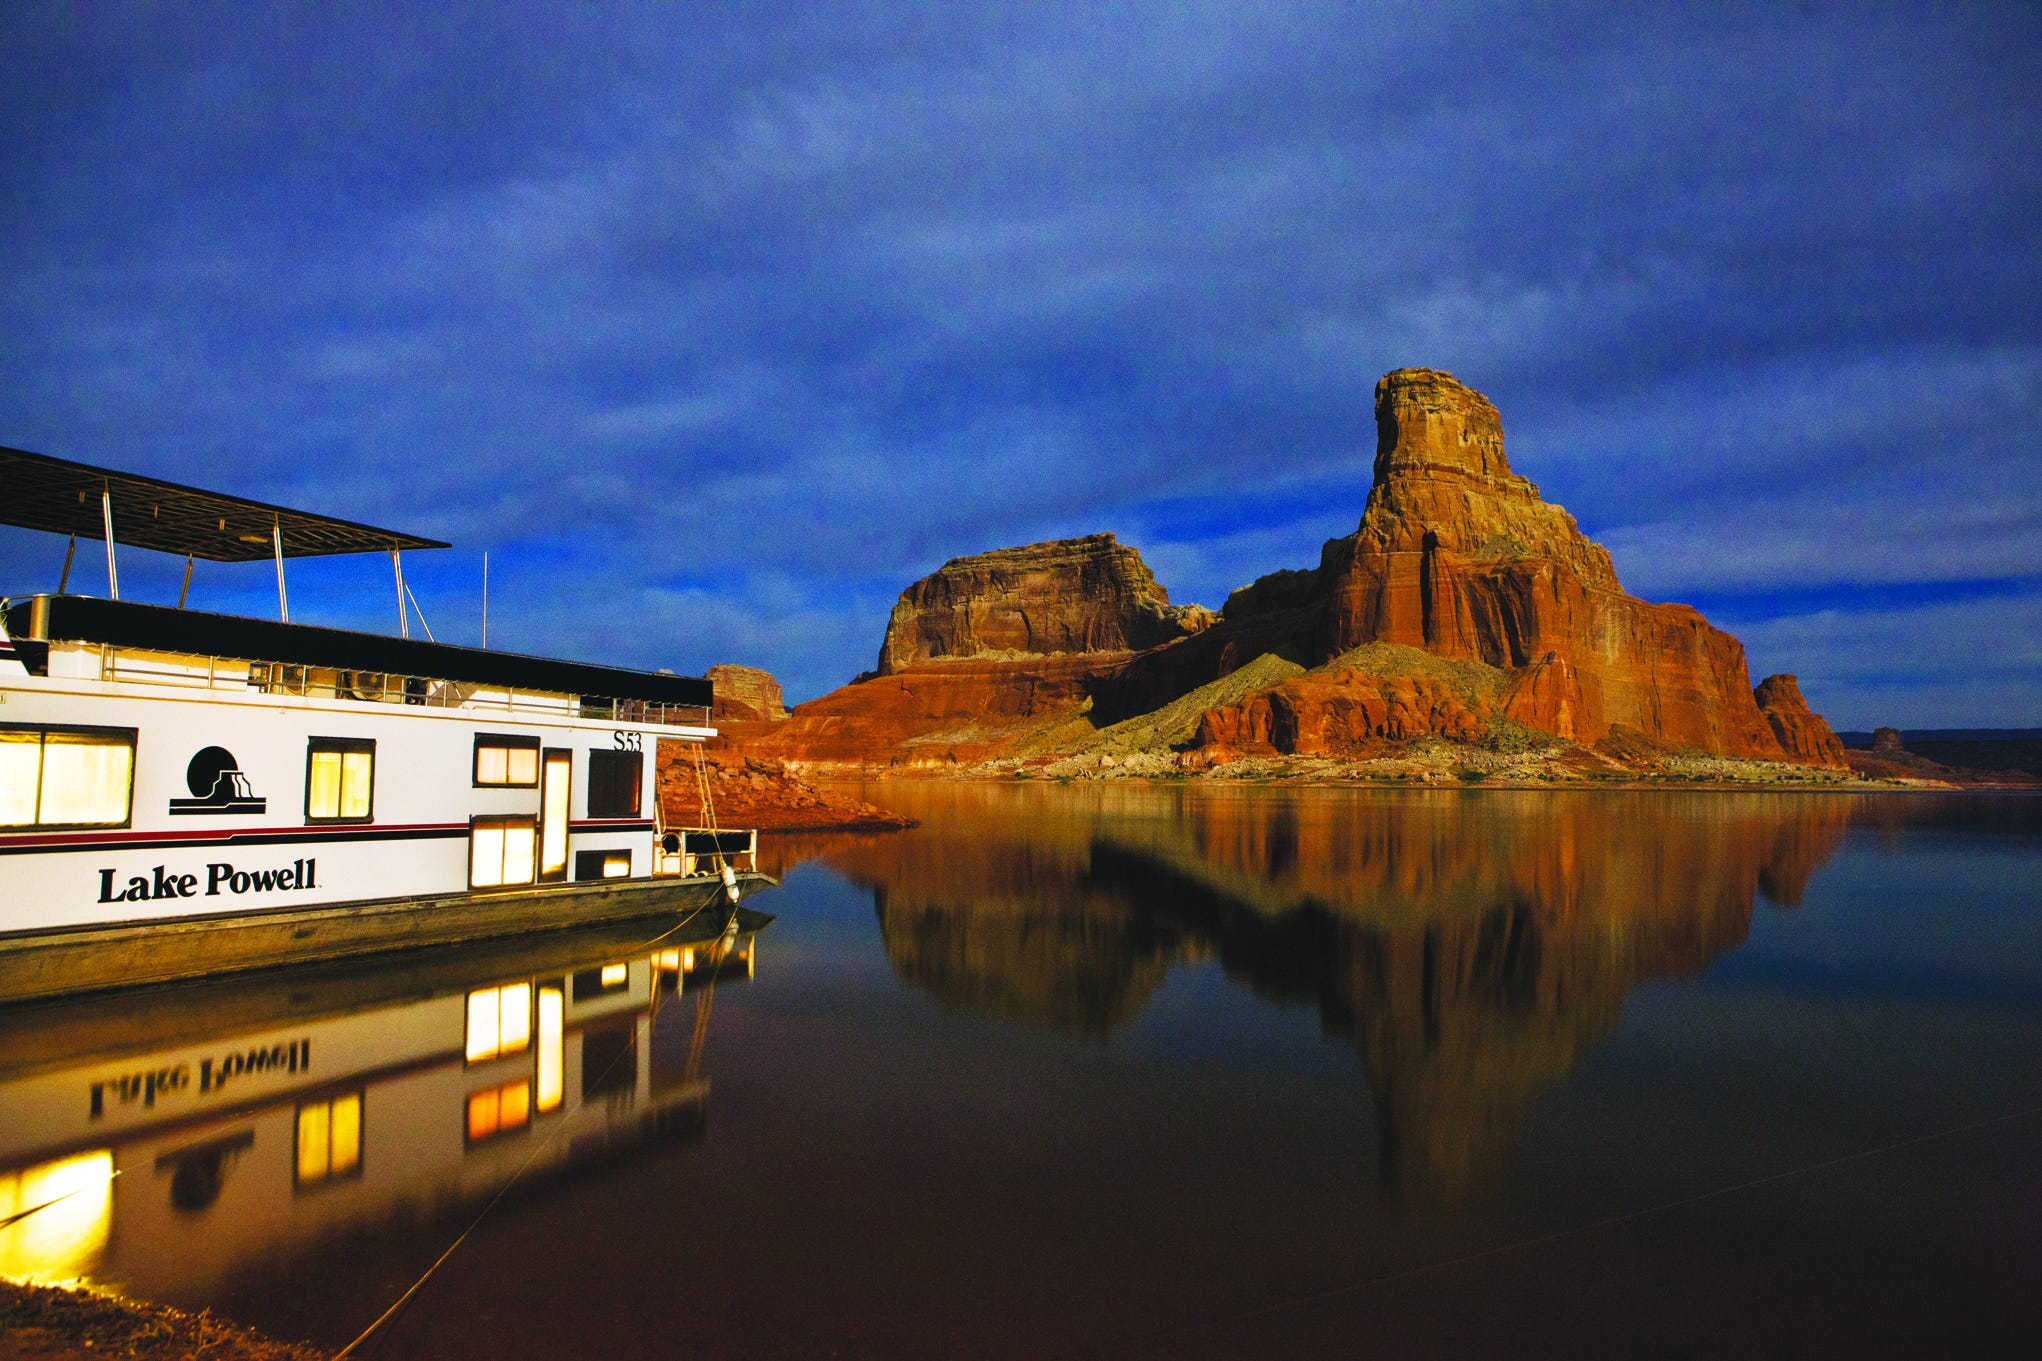 Carbon monoxide puts boaters at risk in the summer. Here's how to stay safe | Arizona Central